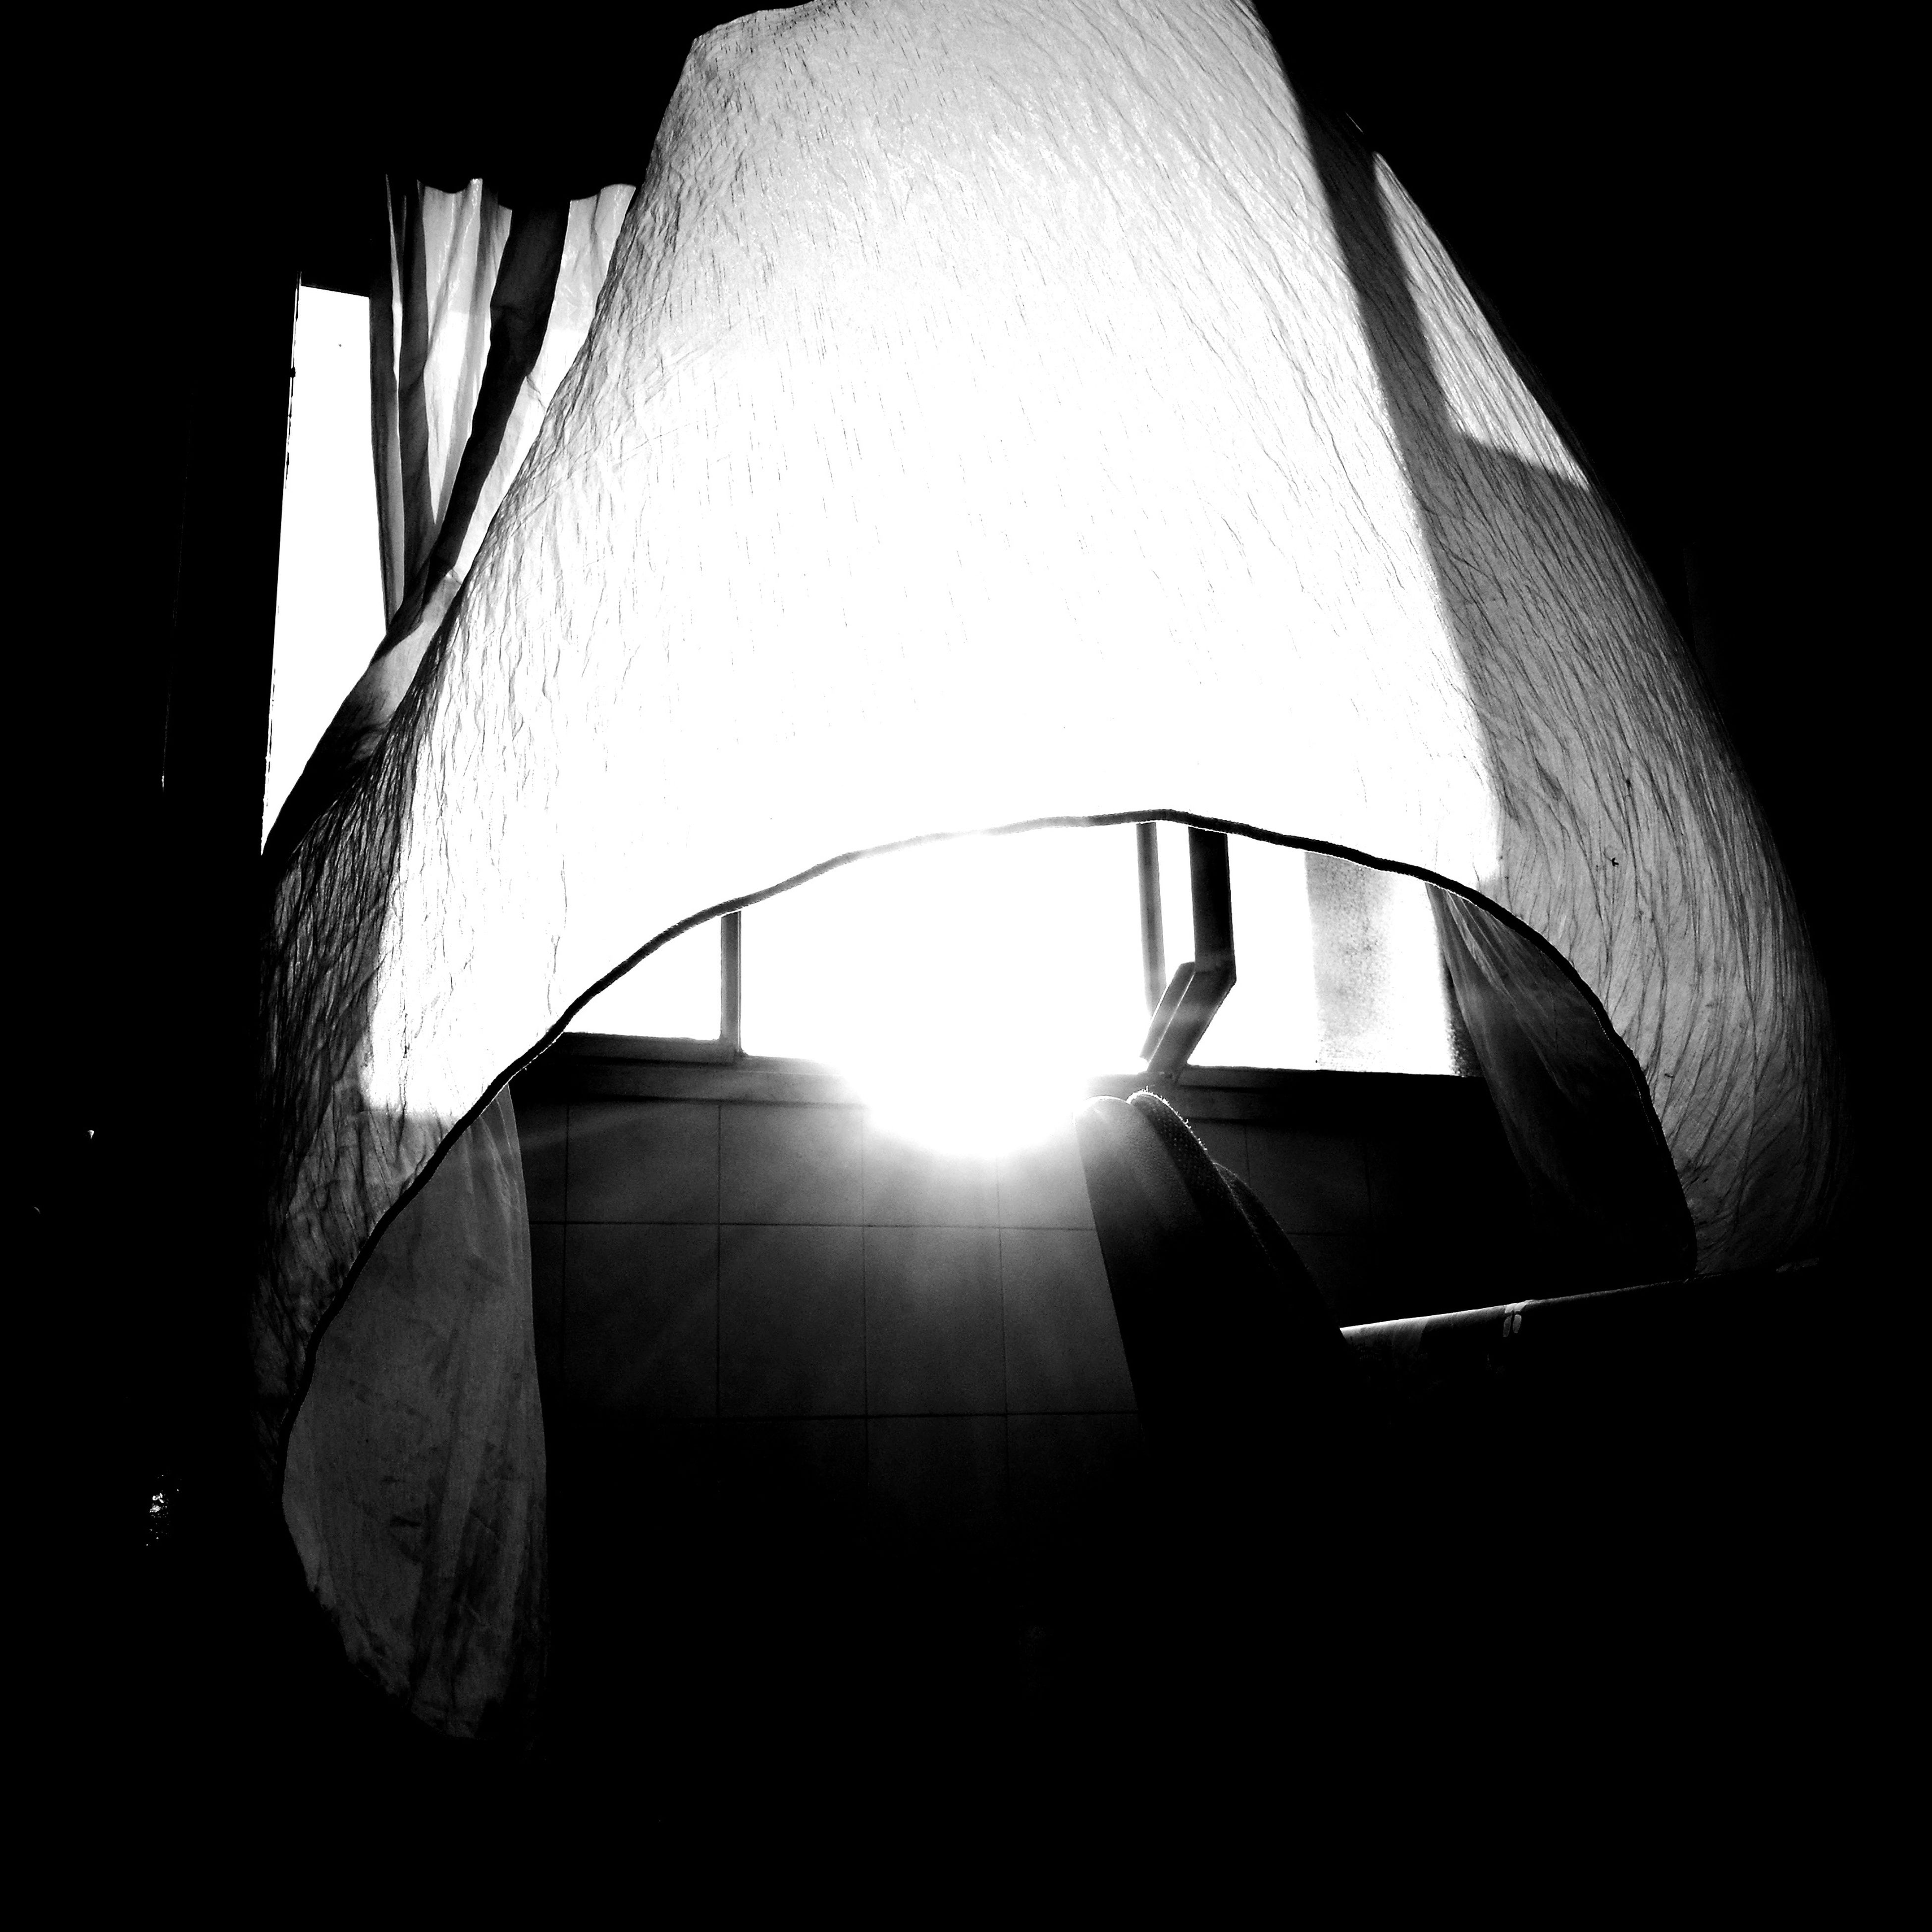 illuminated, indoors, lighting equipment, no people, sunlight, architecture, built structure, lamp shade, modern, close-up, day